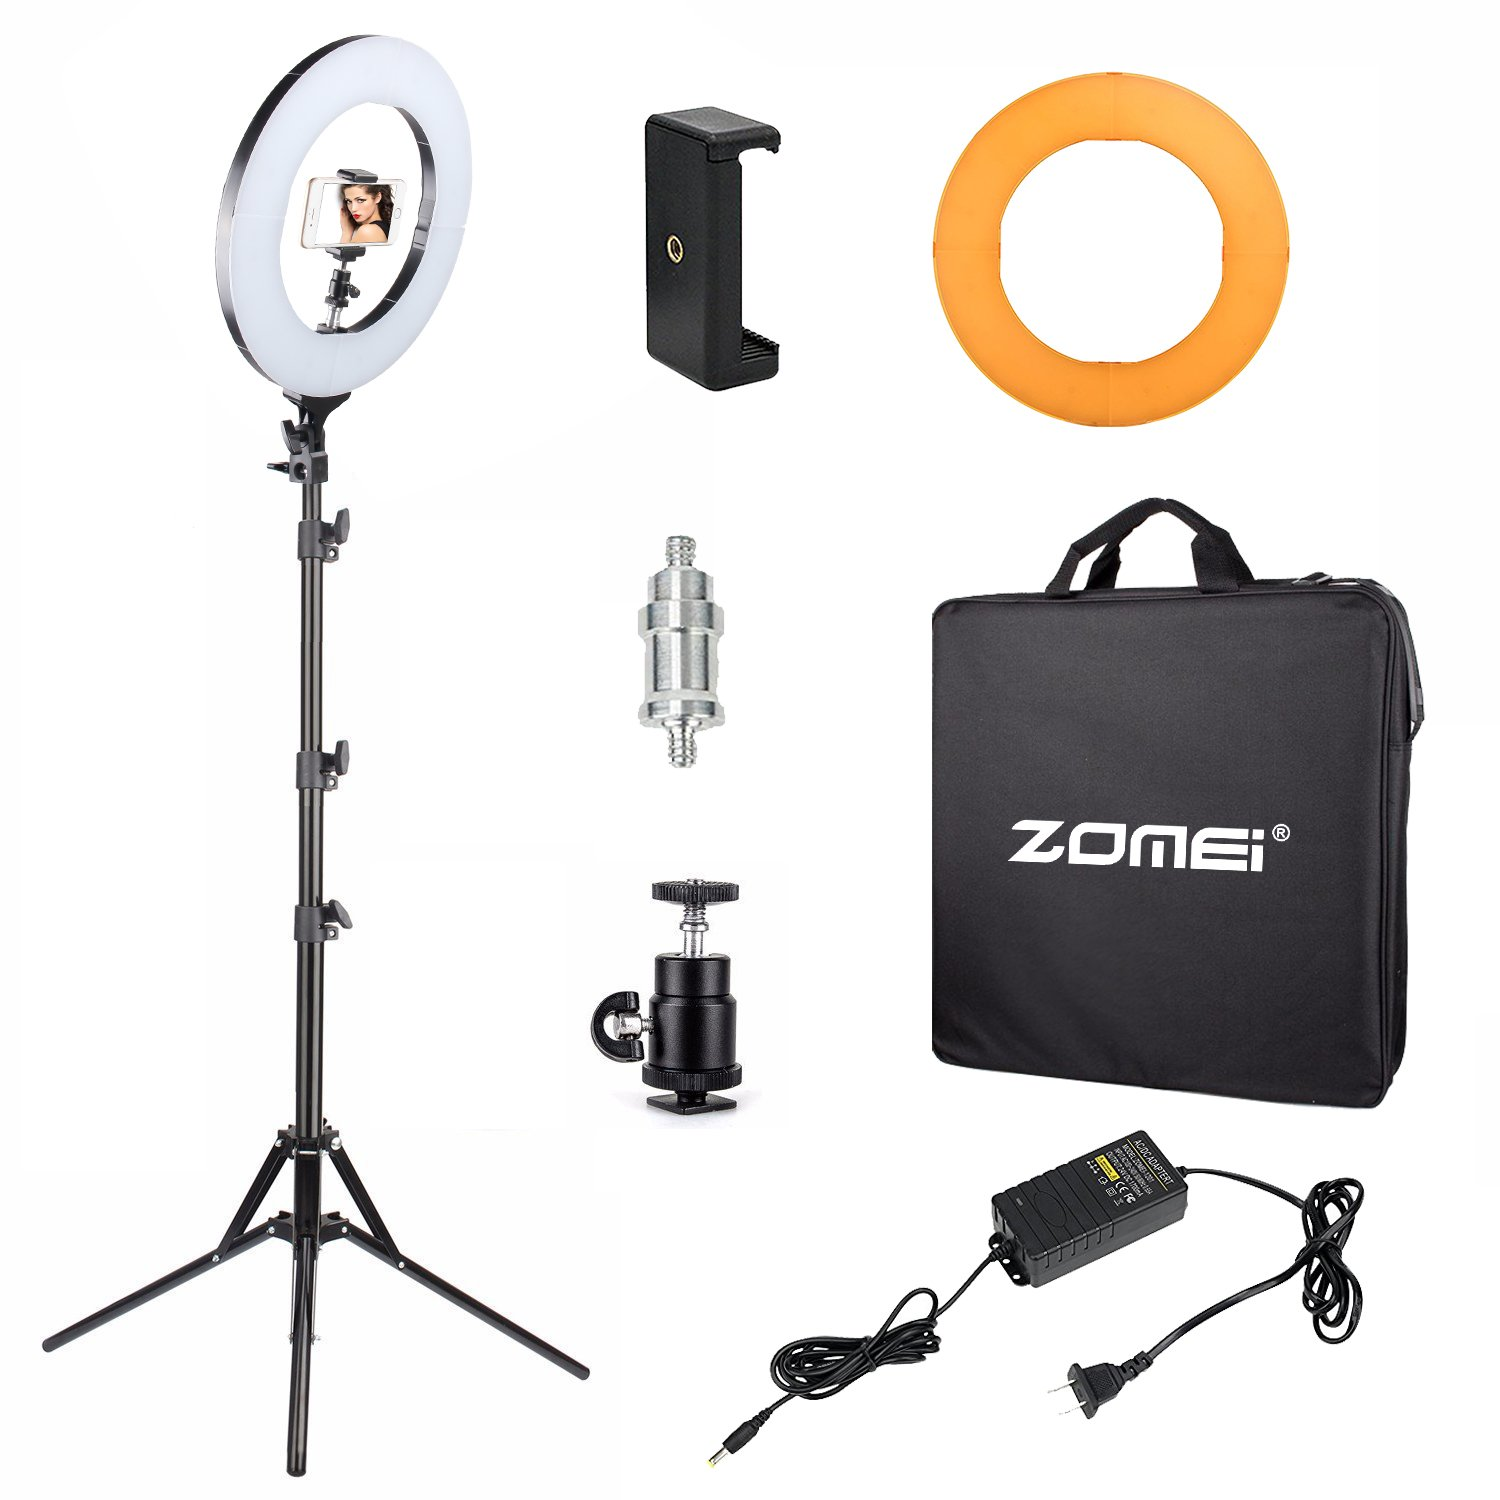 Ring Light Stand Ebay: Zomei 14-inch Dimmable Ring Light Lighting Kit Light Stand